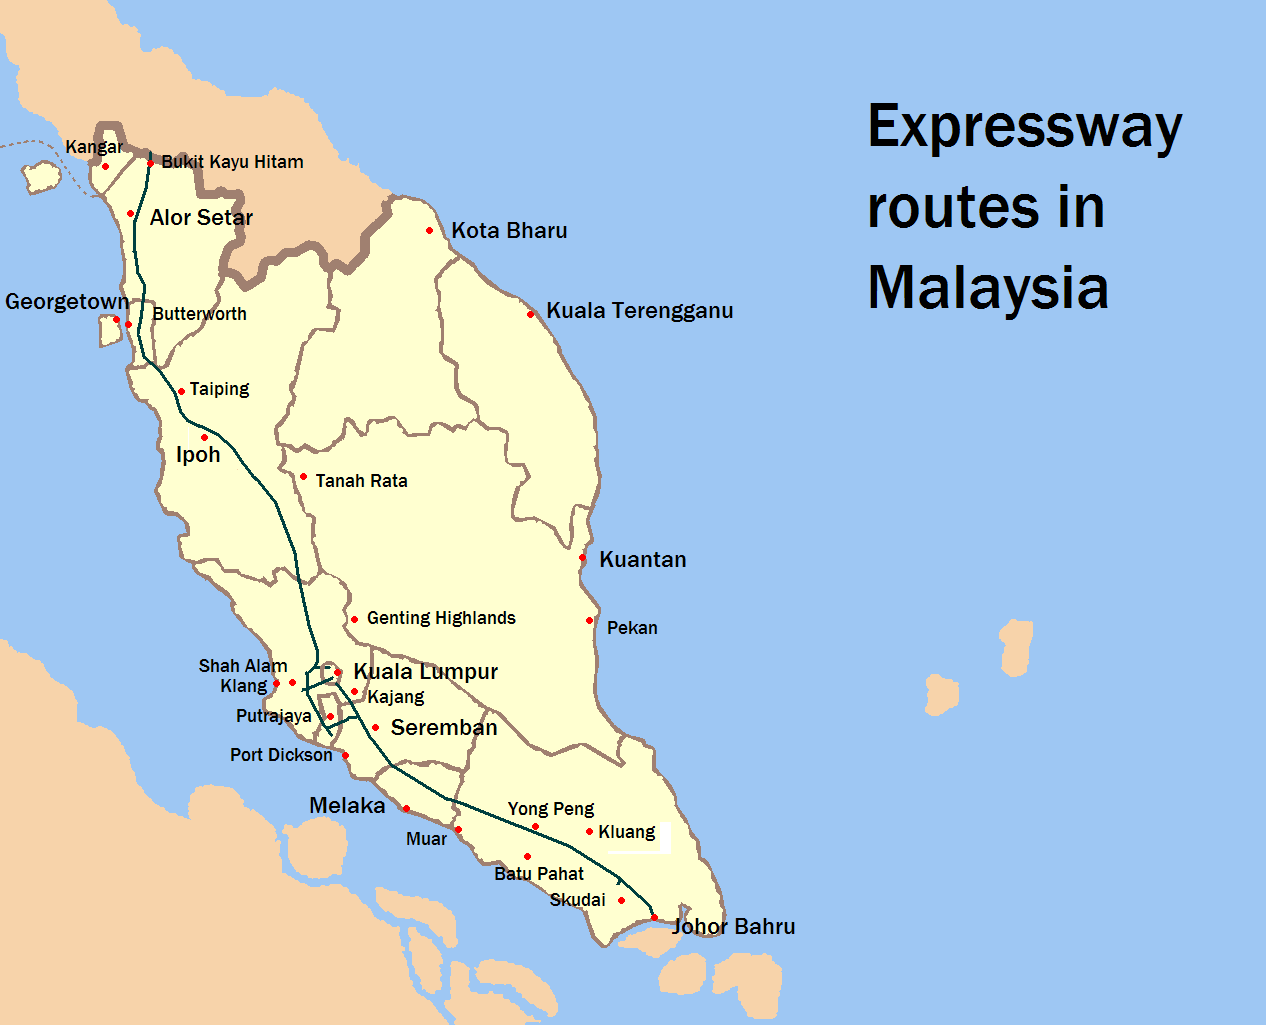 public bus planning system in johor bahru malaysia tourism essay This free geography essay on essay: public transportation in malaysia is perfect   to provide mobility for those who need, create better transport planning and  also to  demanding of public transport in johor bahru area also increases  based on the  myteksi application is mobile application system for android  operating.